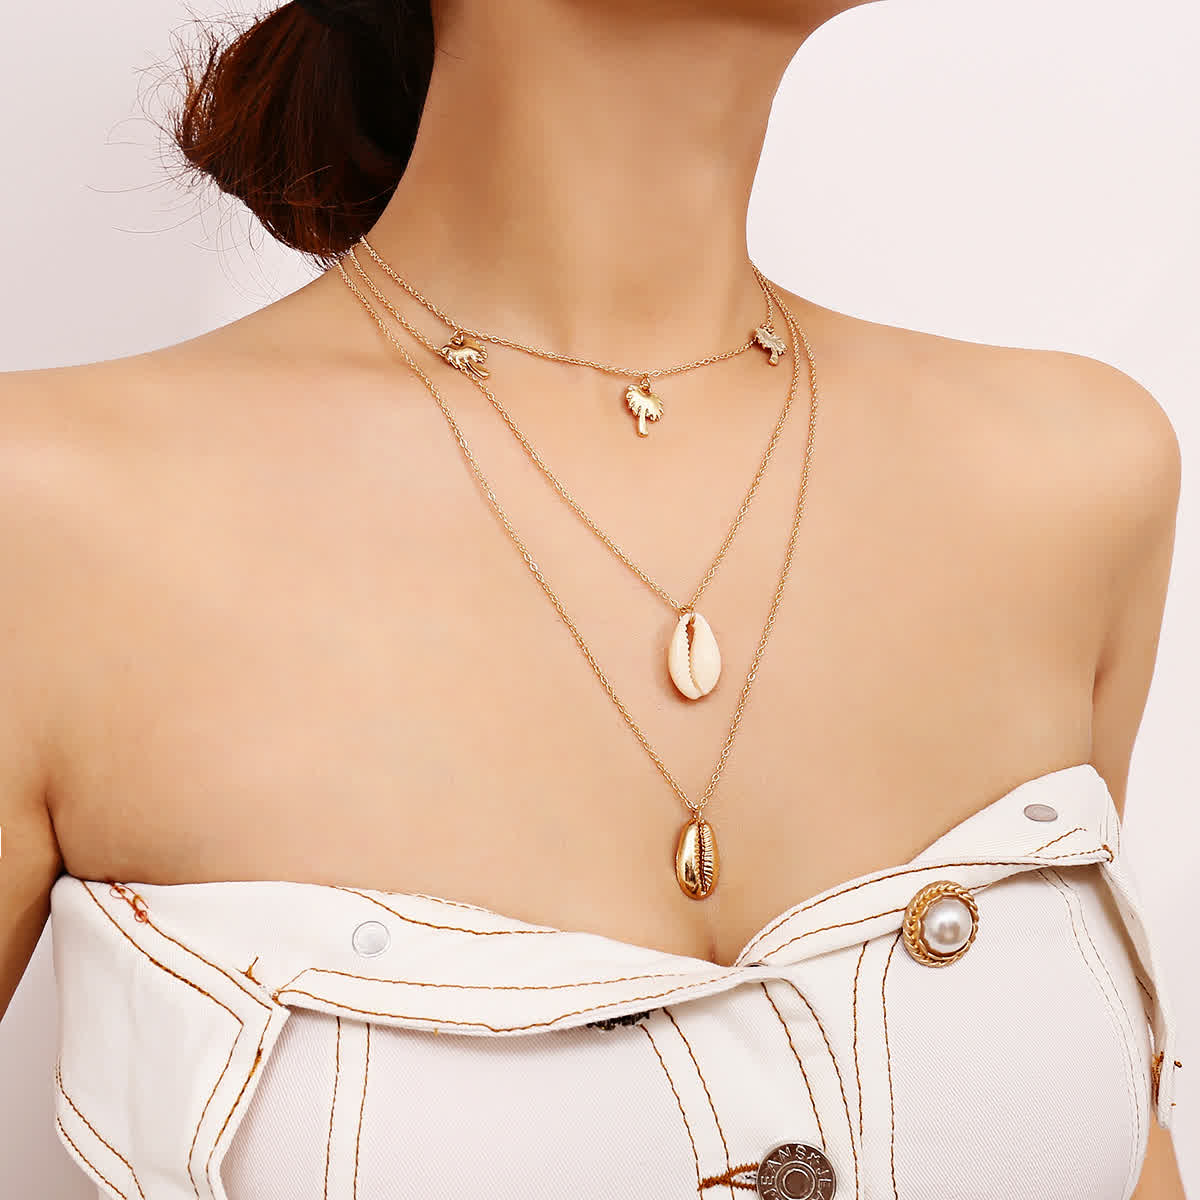 Bohemia Multilayer Coconut Tree Shell Choker Necklace Alloy Seashell Pendant Necklace for Women Gold